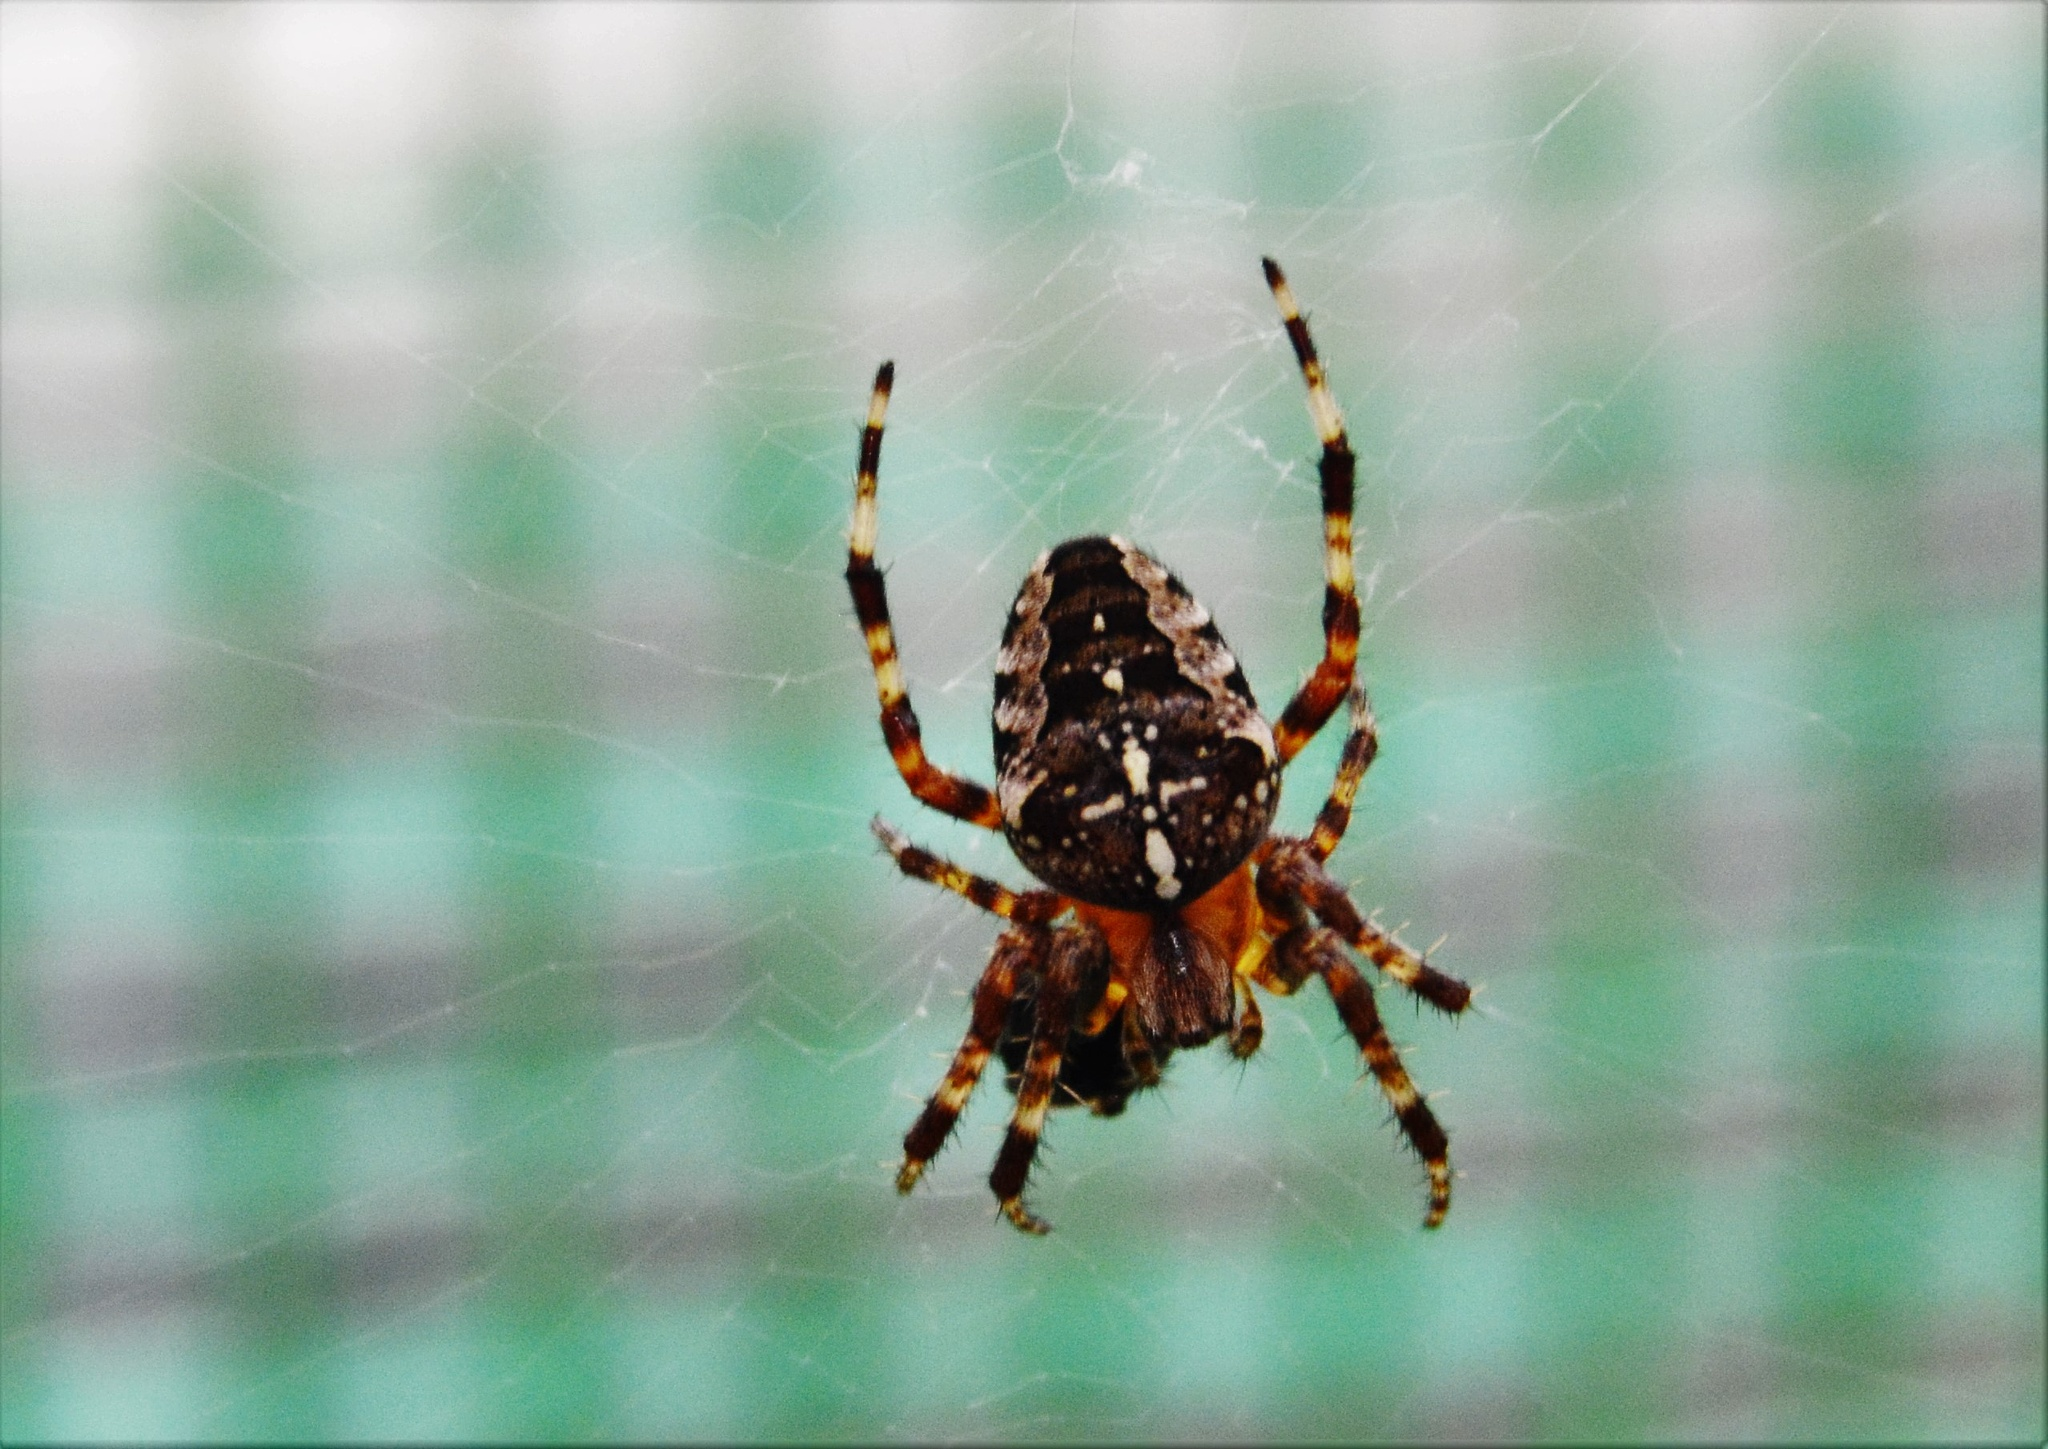 Spider at lunch by Andrew Longhurst